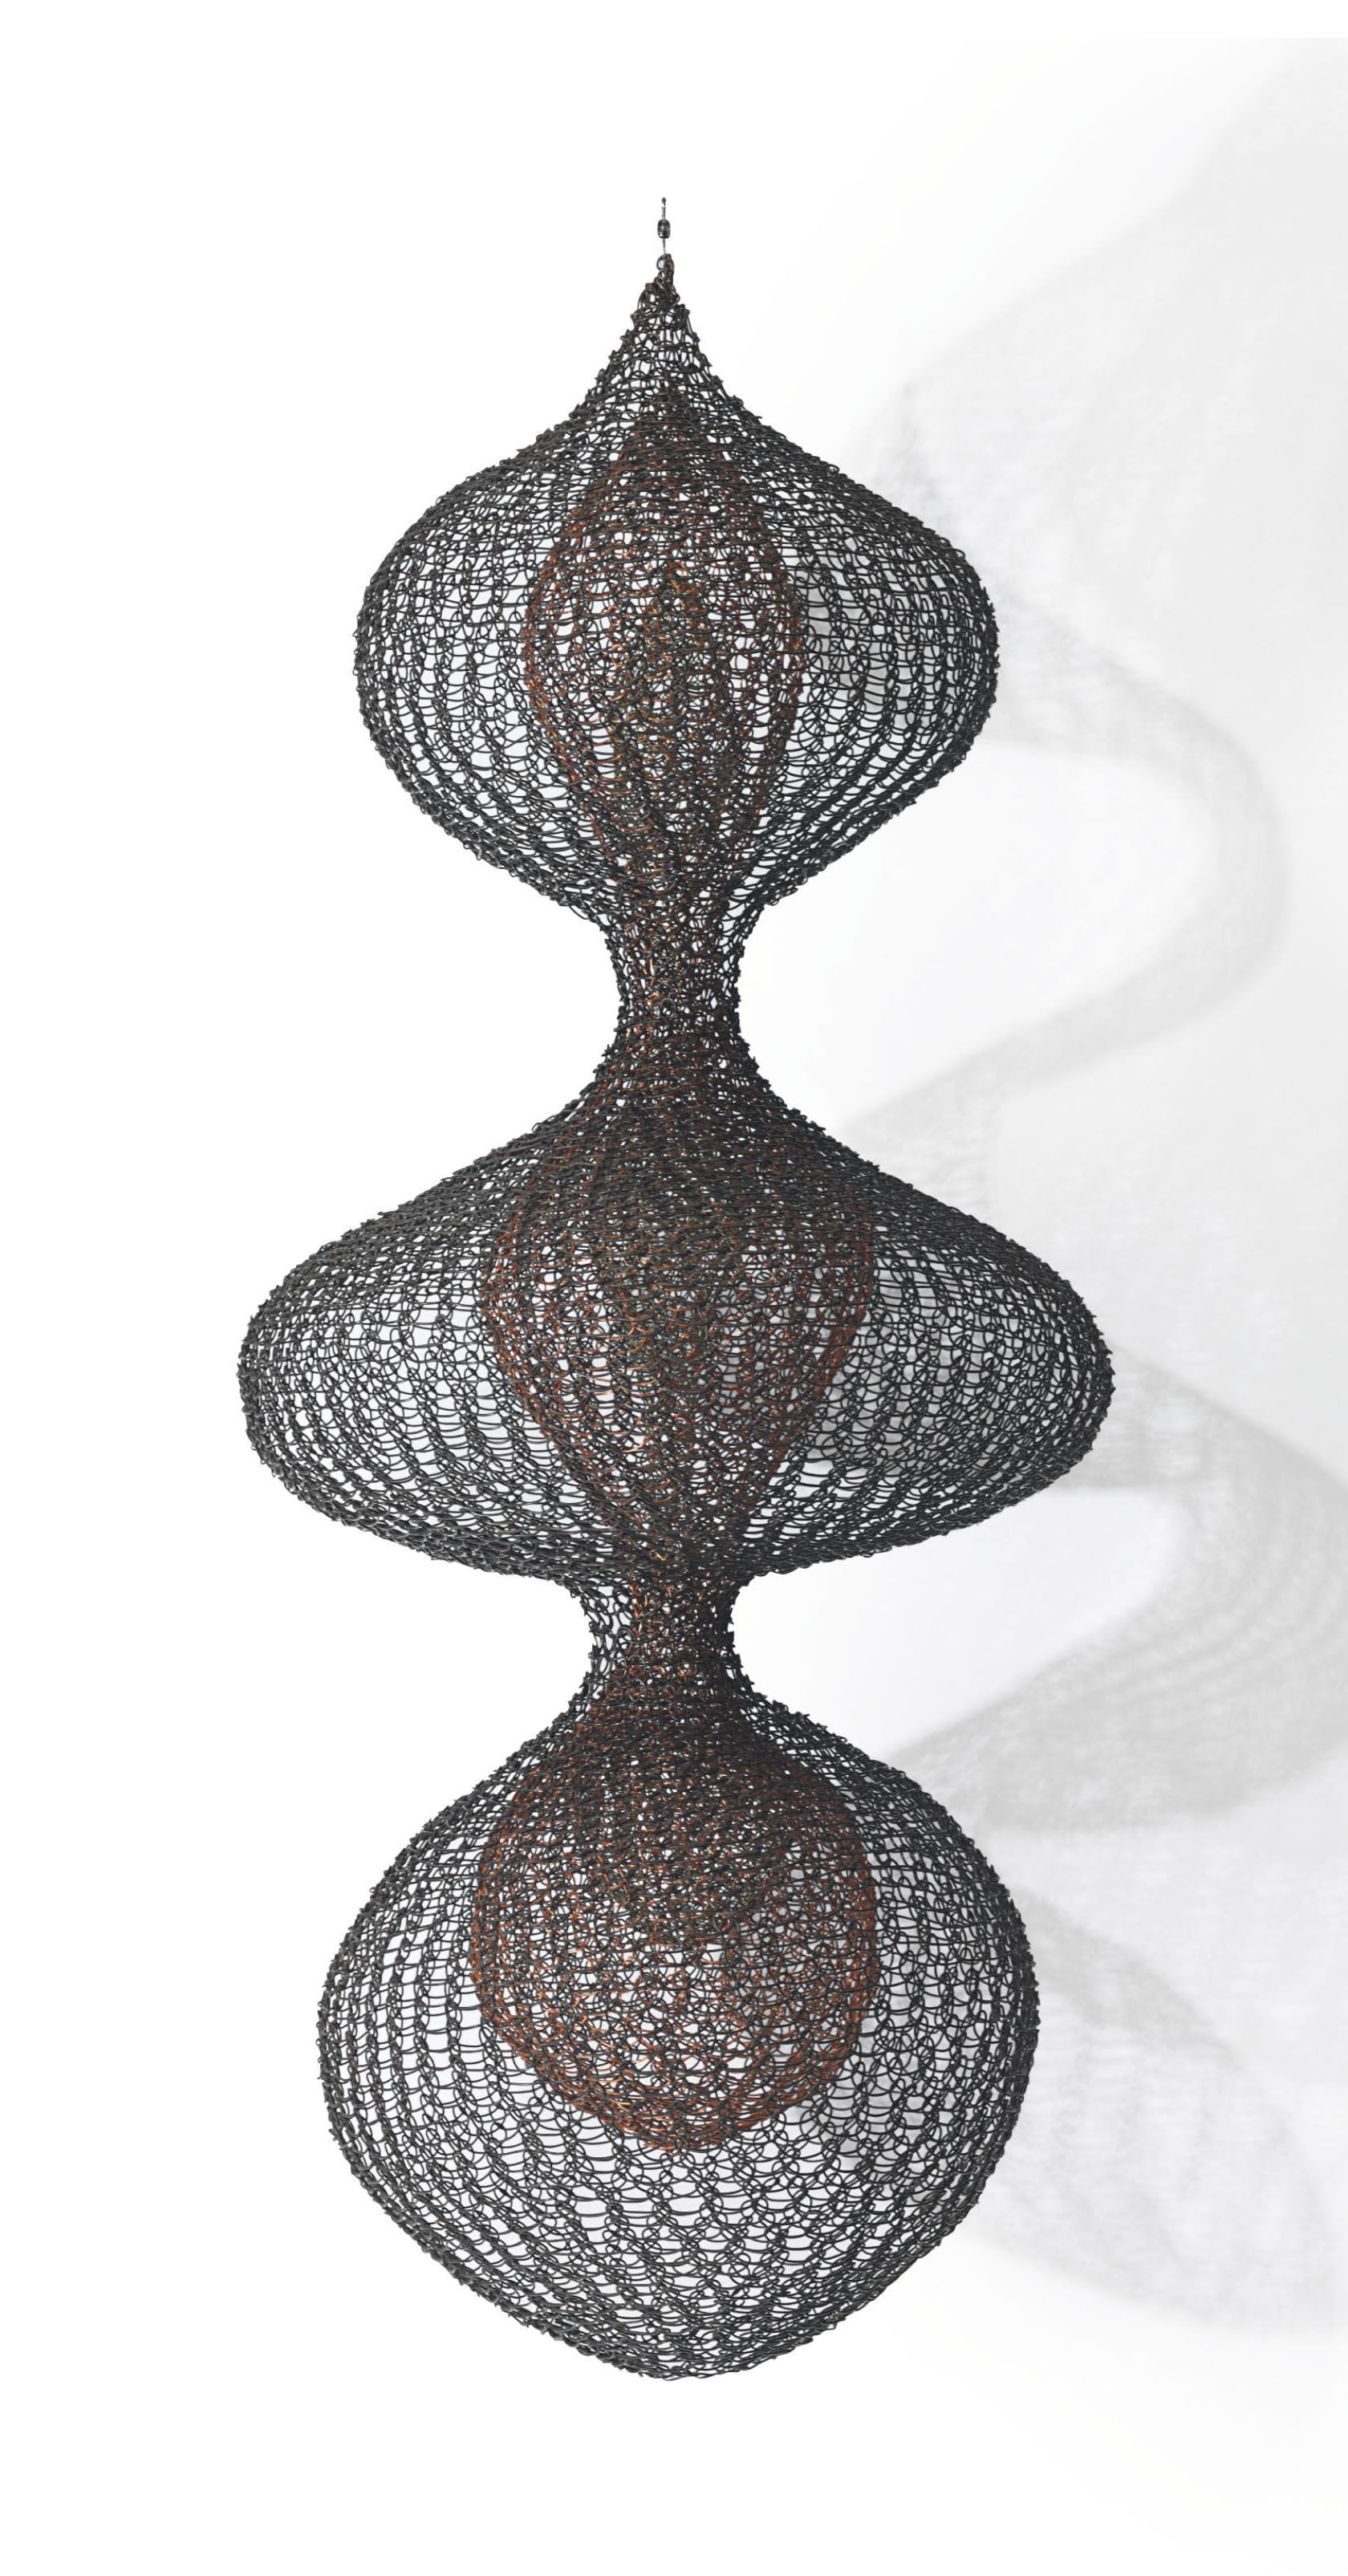 Untitled S.387 (Three Lobed Continuous Form with Two Interior Lobed Continuous Forms)